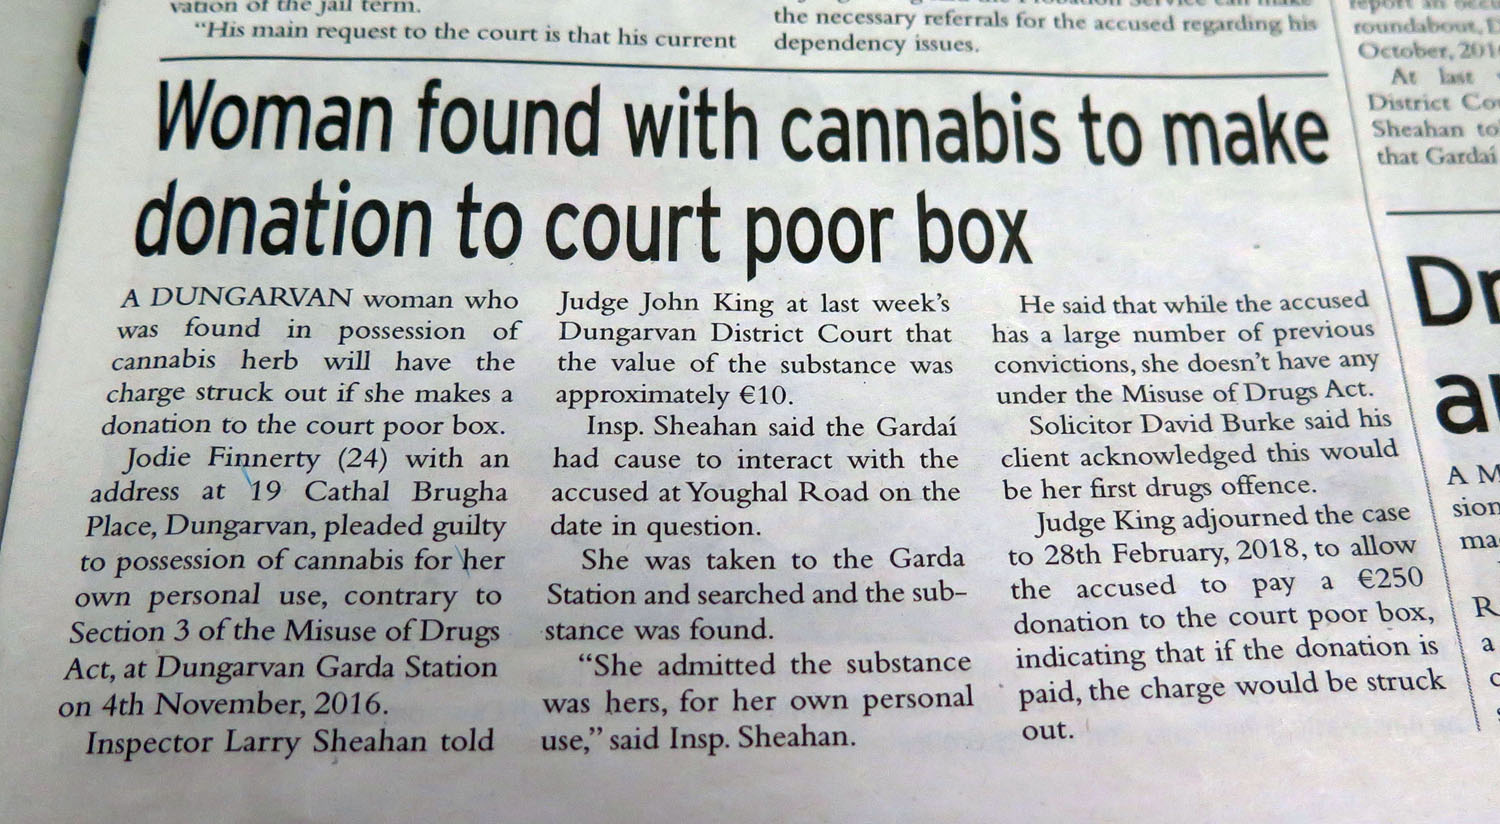 Ireland-Sights-And-Scenery-Dungarvan-Cannabis-Sentence